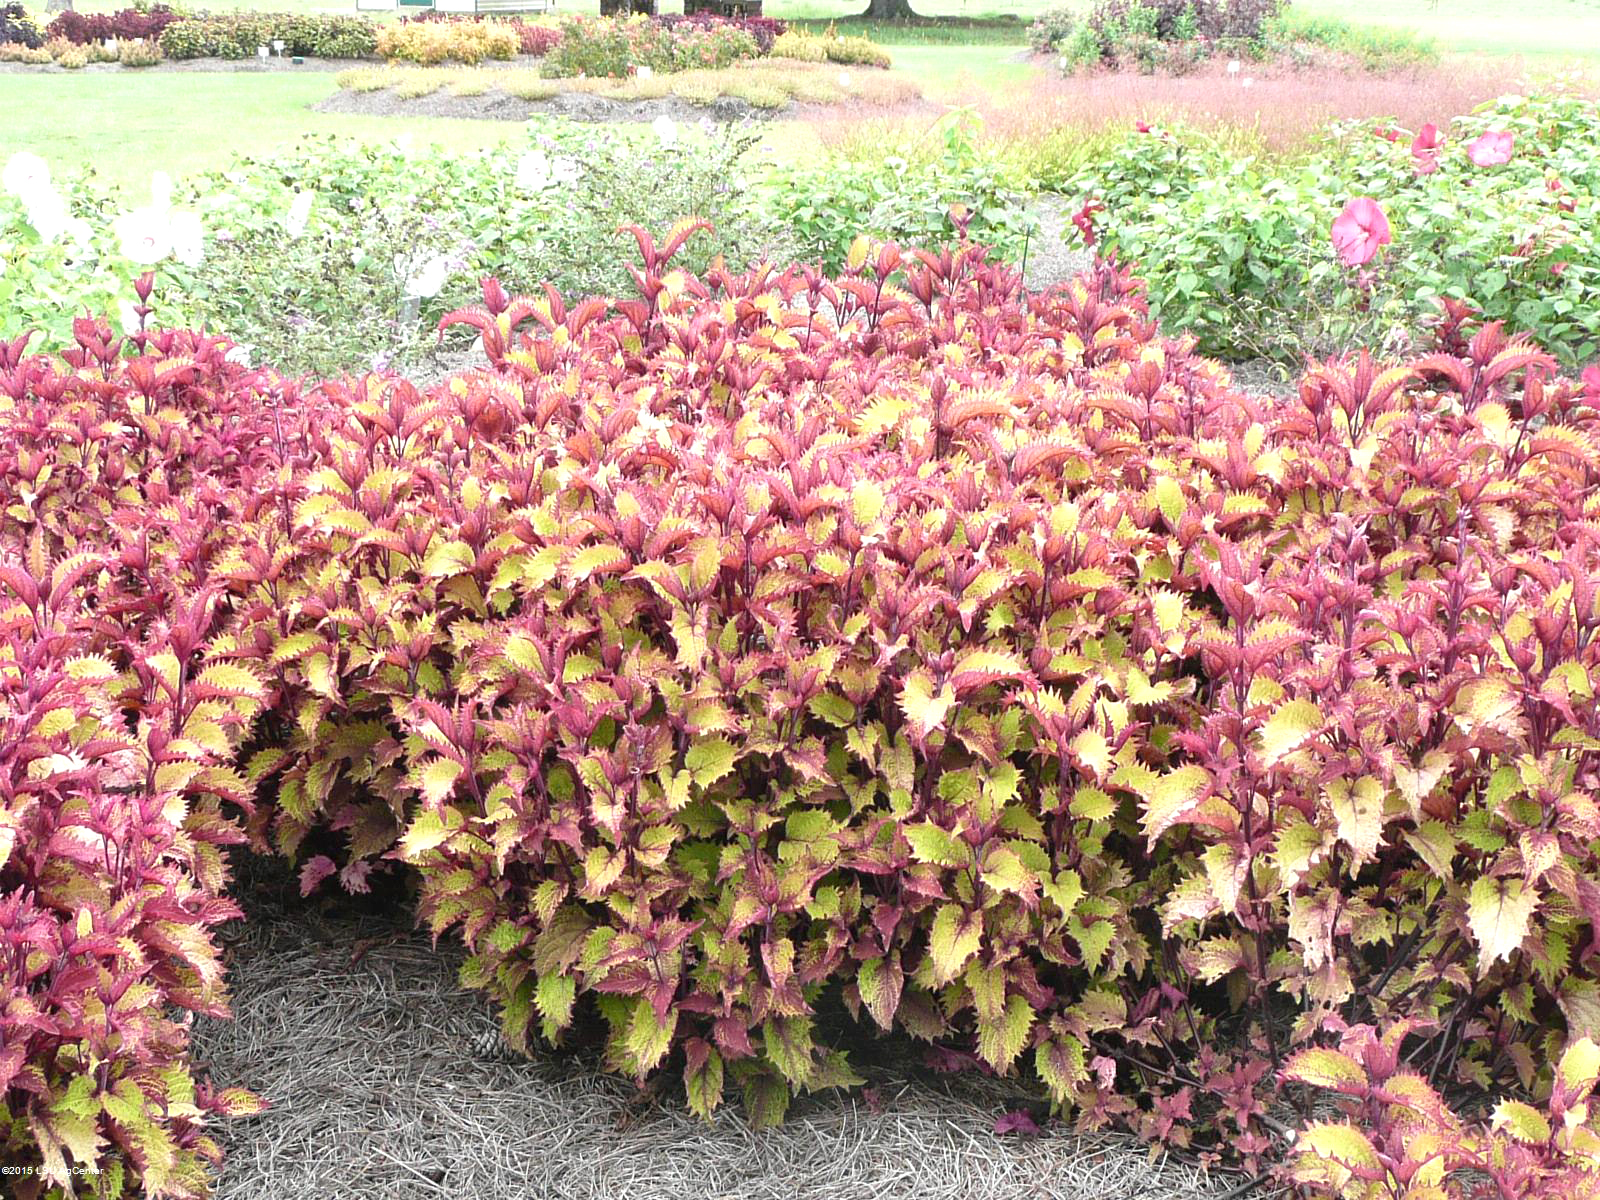 Get It Growing Henna Coleus Is A Super Plant Bossier Press Tribune